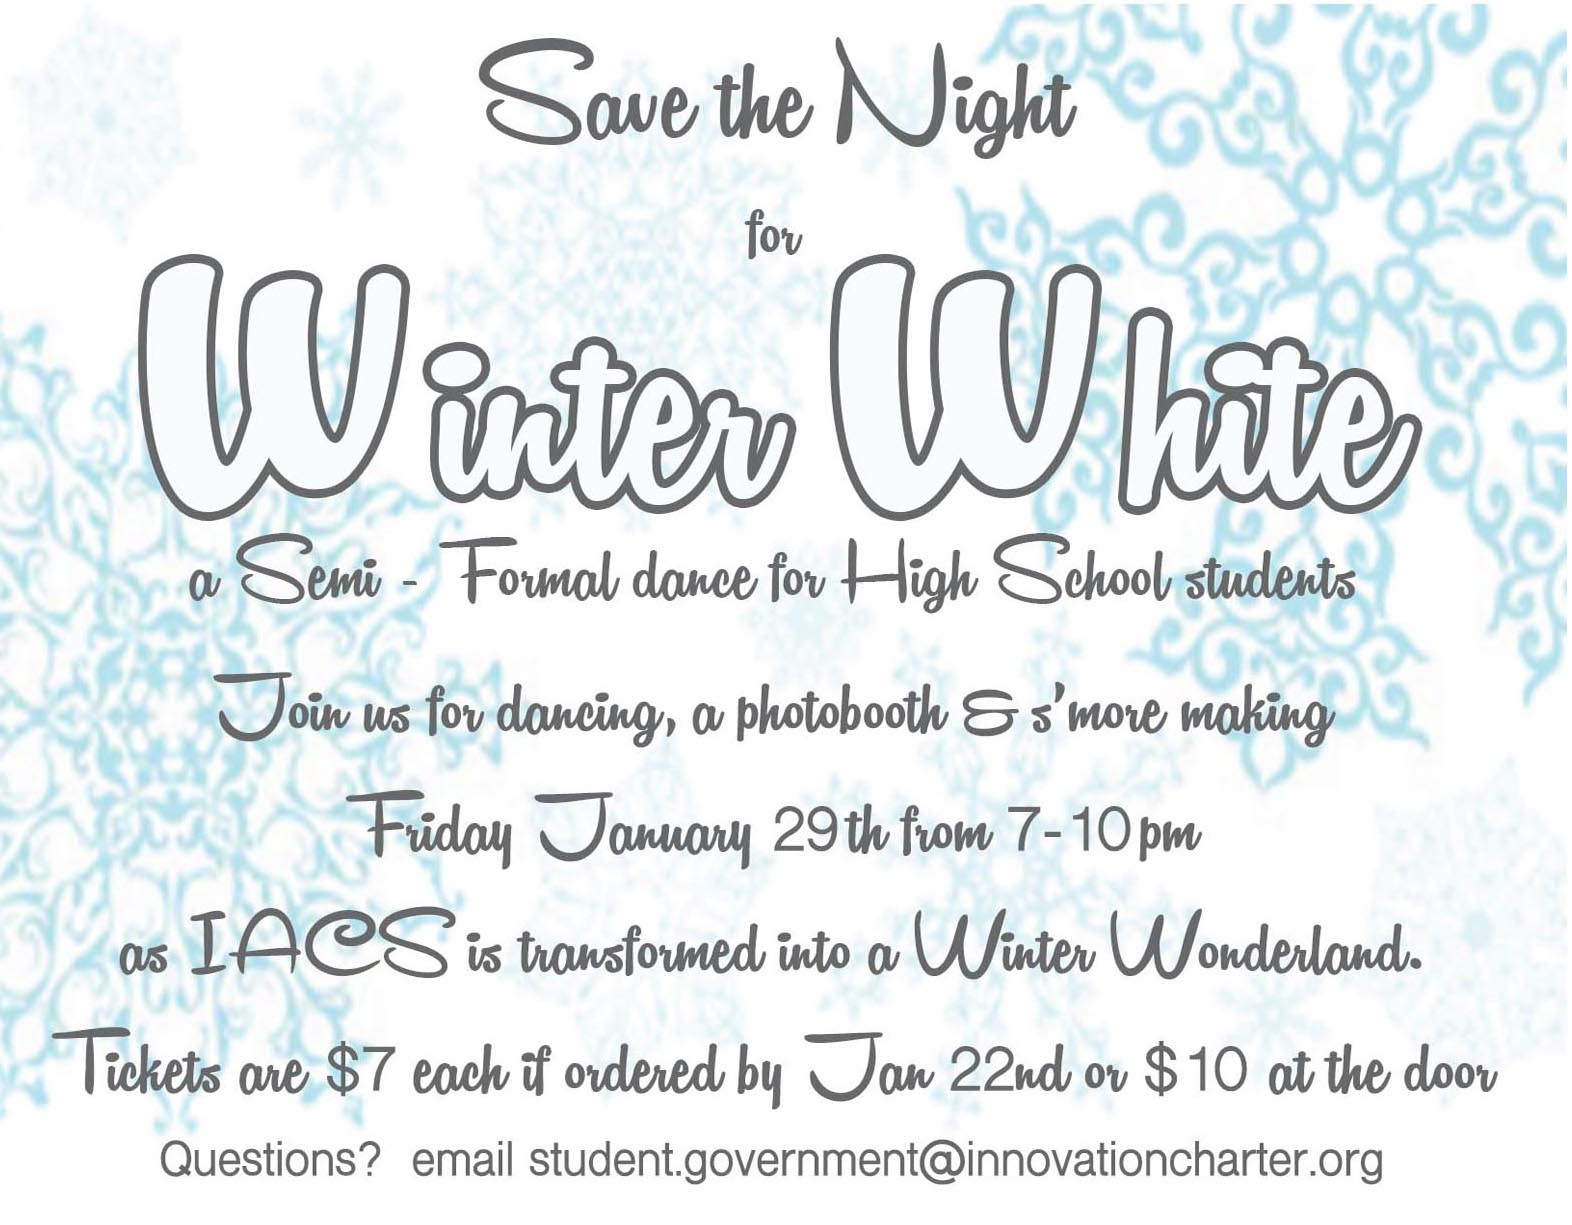 Winter White Waltz This Friday!